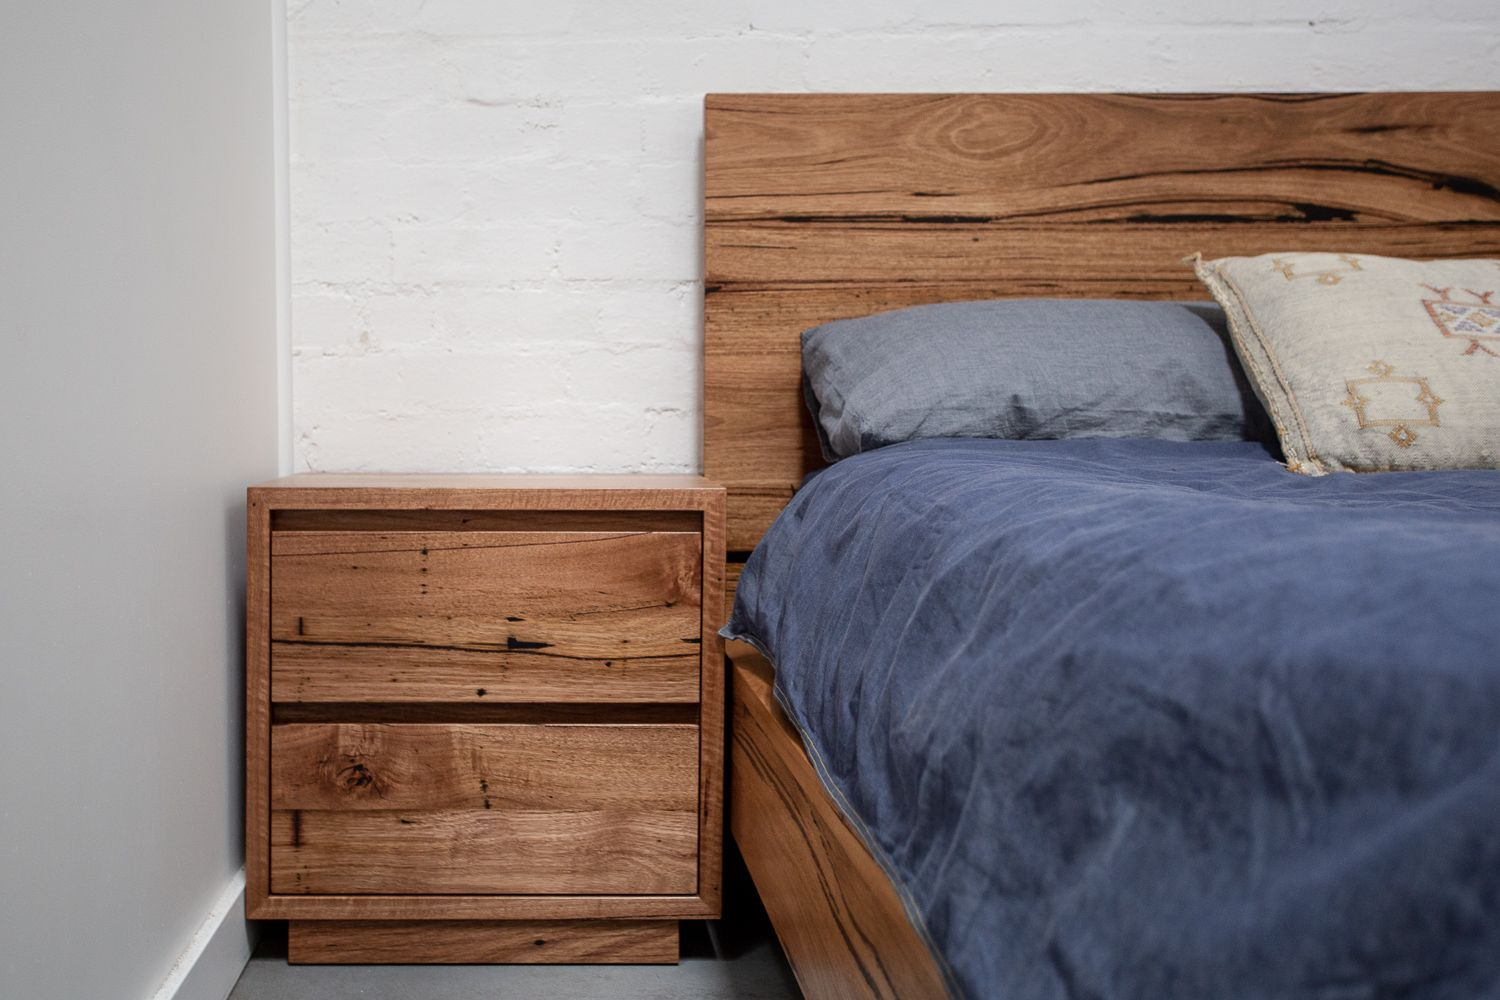 Heathcote Recycled Timber Bedside Table And Helga Bed Timber Beds Bed Furniture Furniture